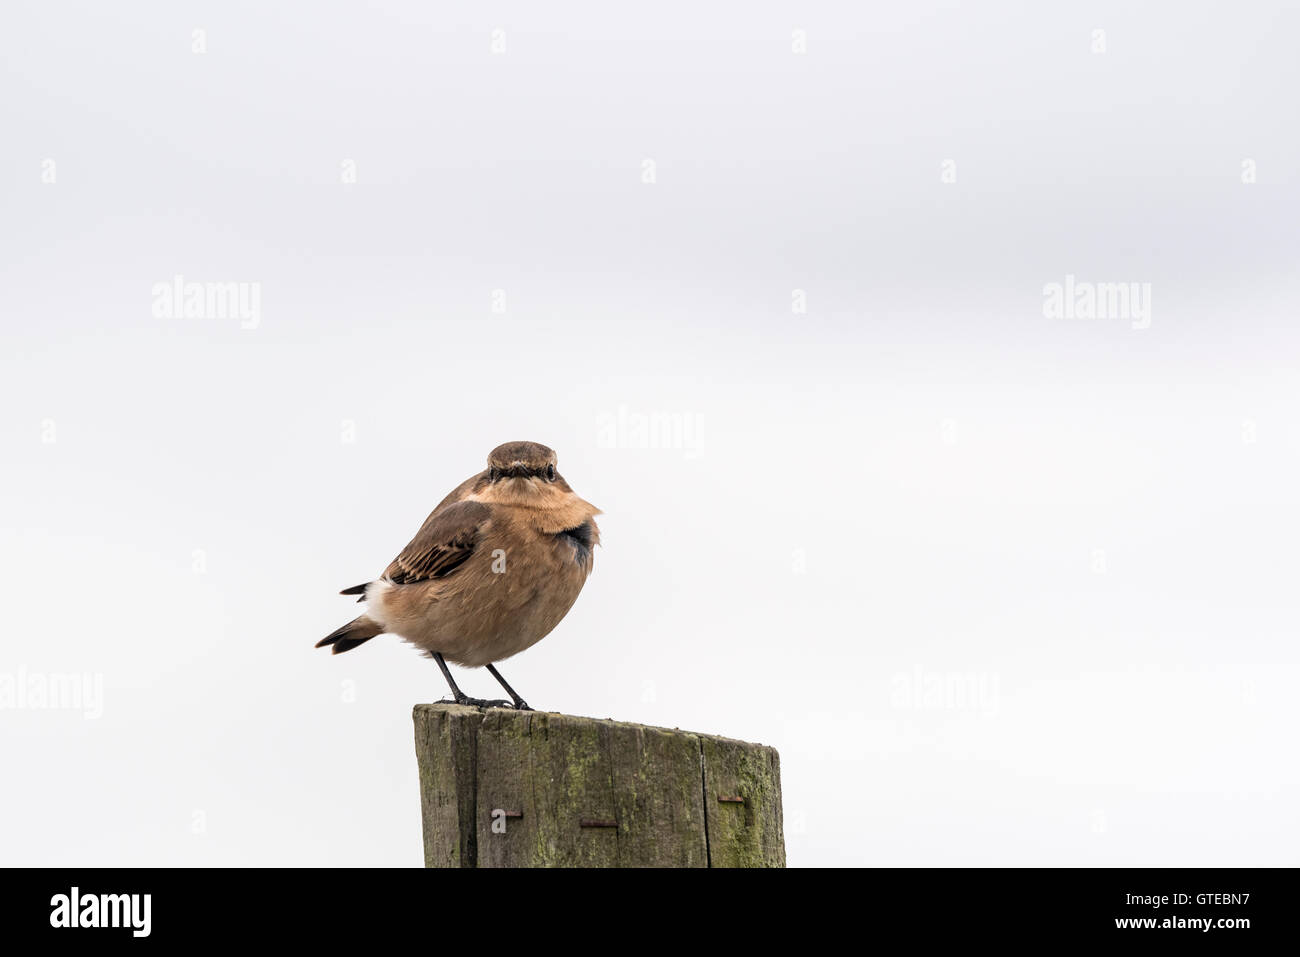 A Wheatear perched on a post Stock Photo